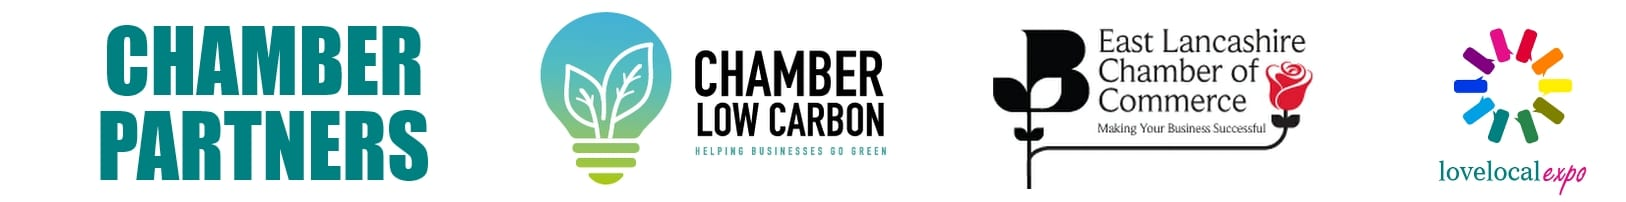 lle20 site scroll graphic chamber partners